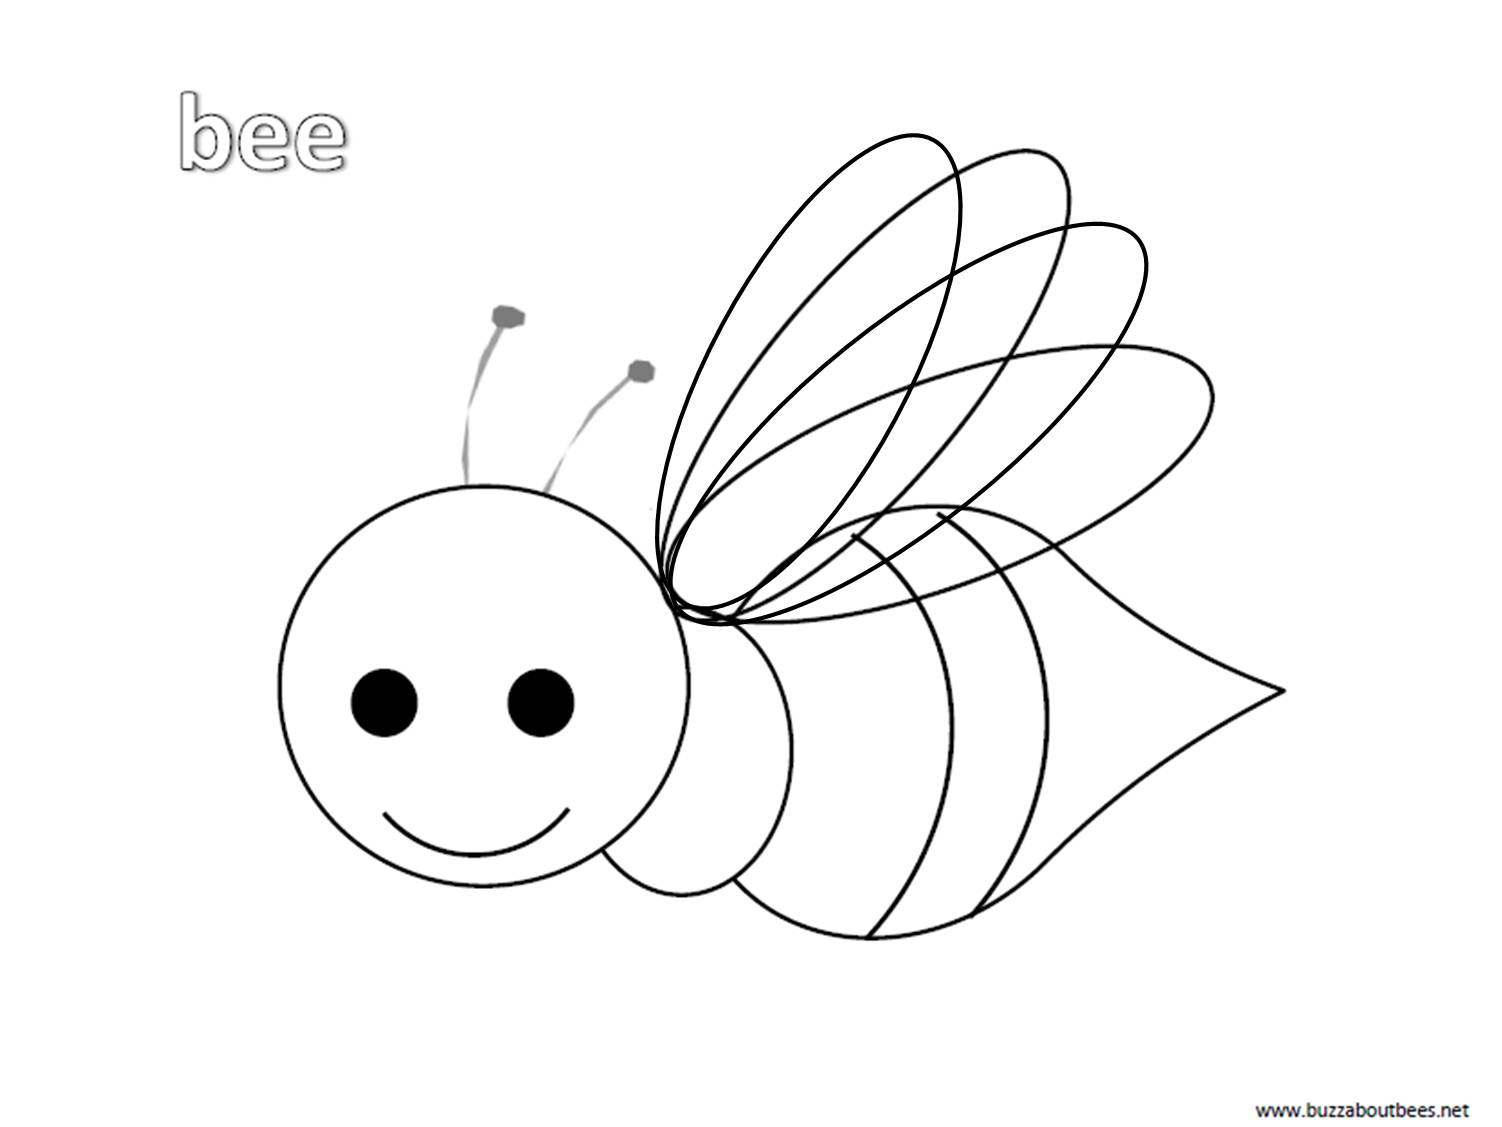 bees colouring pages bee coloring pages educational activity sheets and colouring pages bees